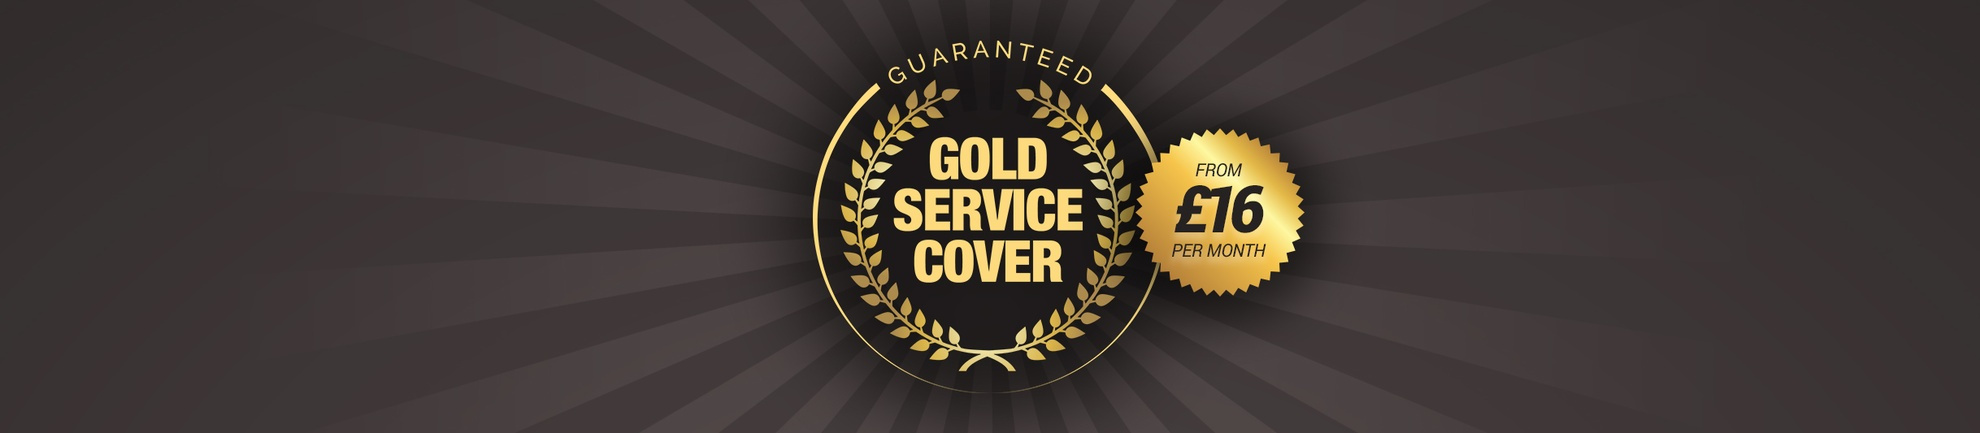 Boiler Gold Service Cover